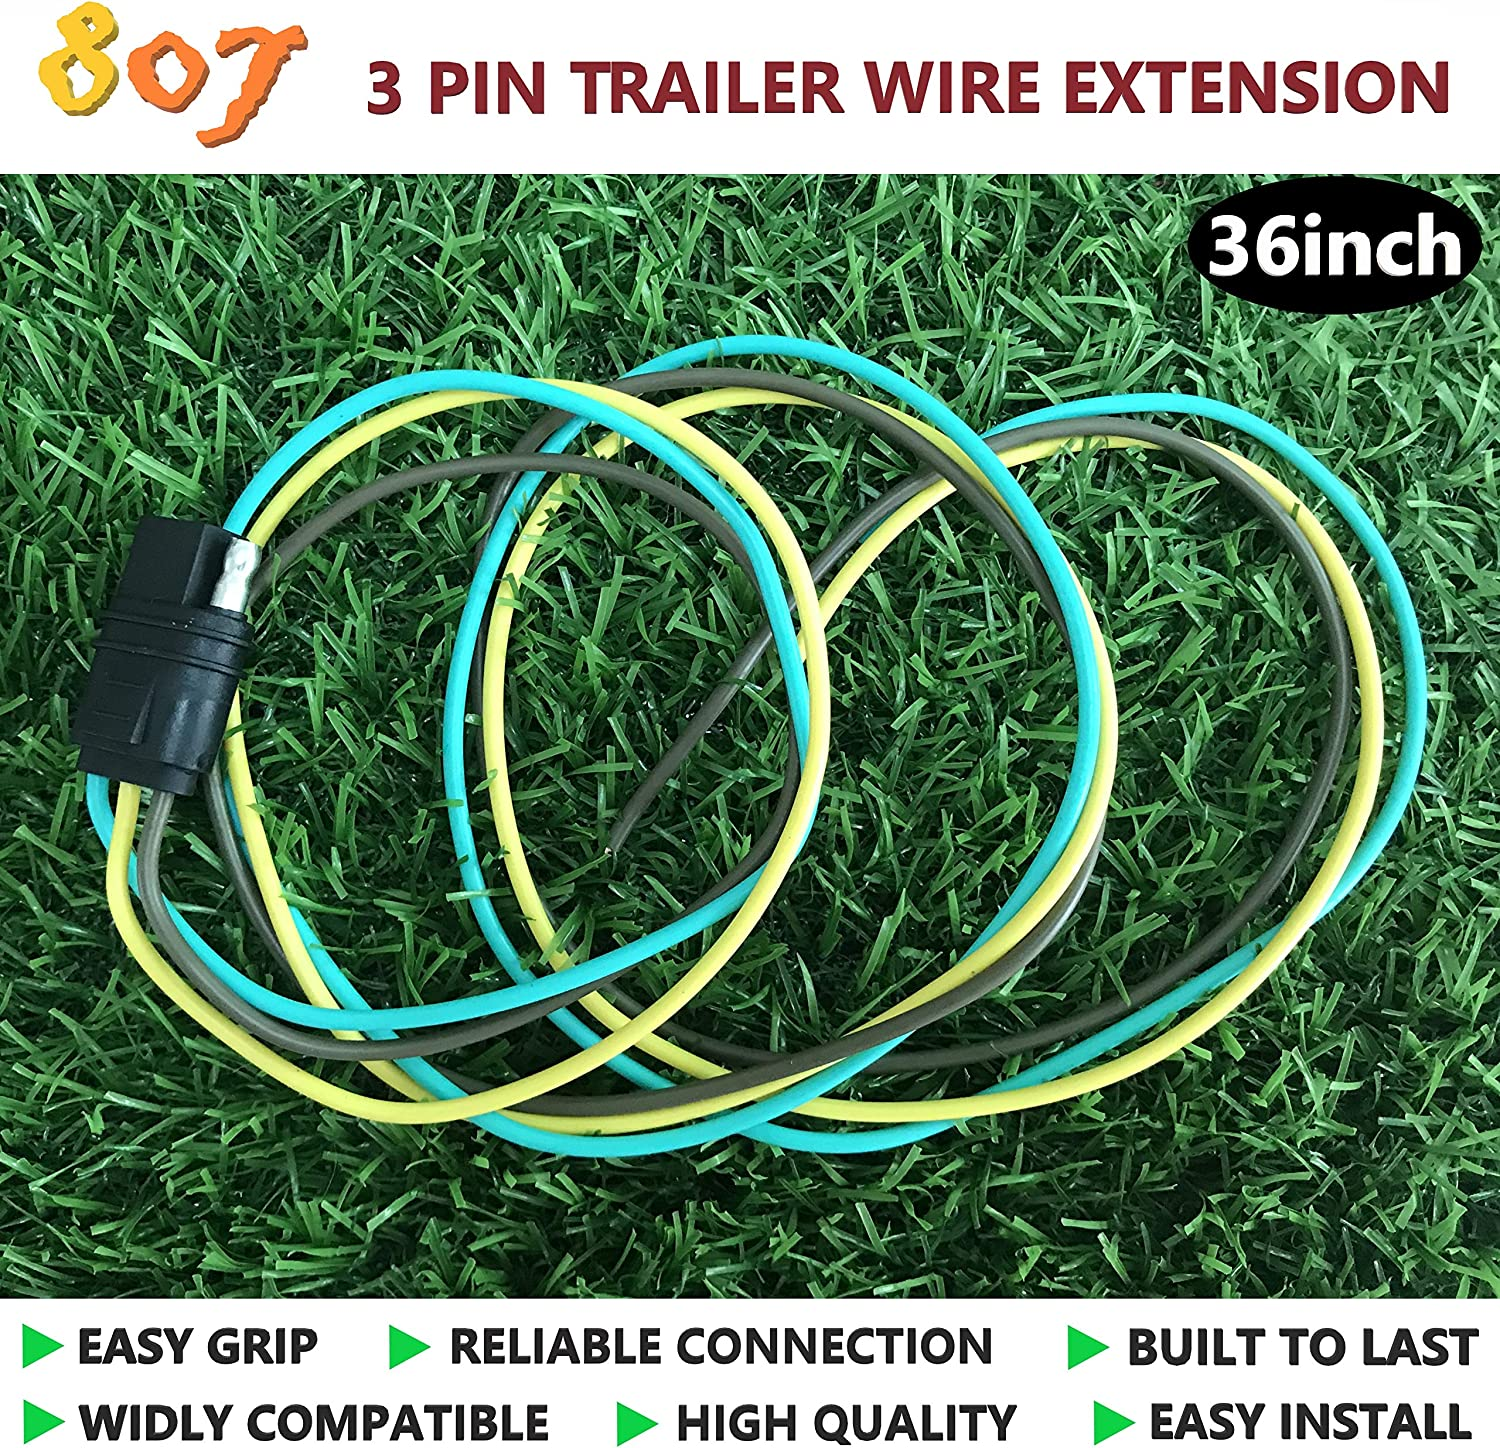 3 Way Flat Socket 3 Pin Traile Plug Connector 36inch for LED Brake Tailgate Light Bars,Hitch Light Trailer Wiring Harness Extension Connector 807 3 Way Flat Trailer Wire Connectors